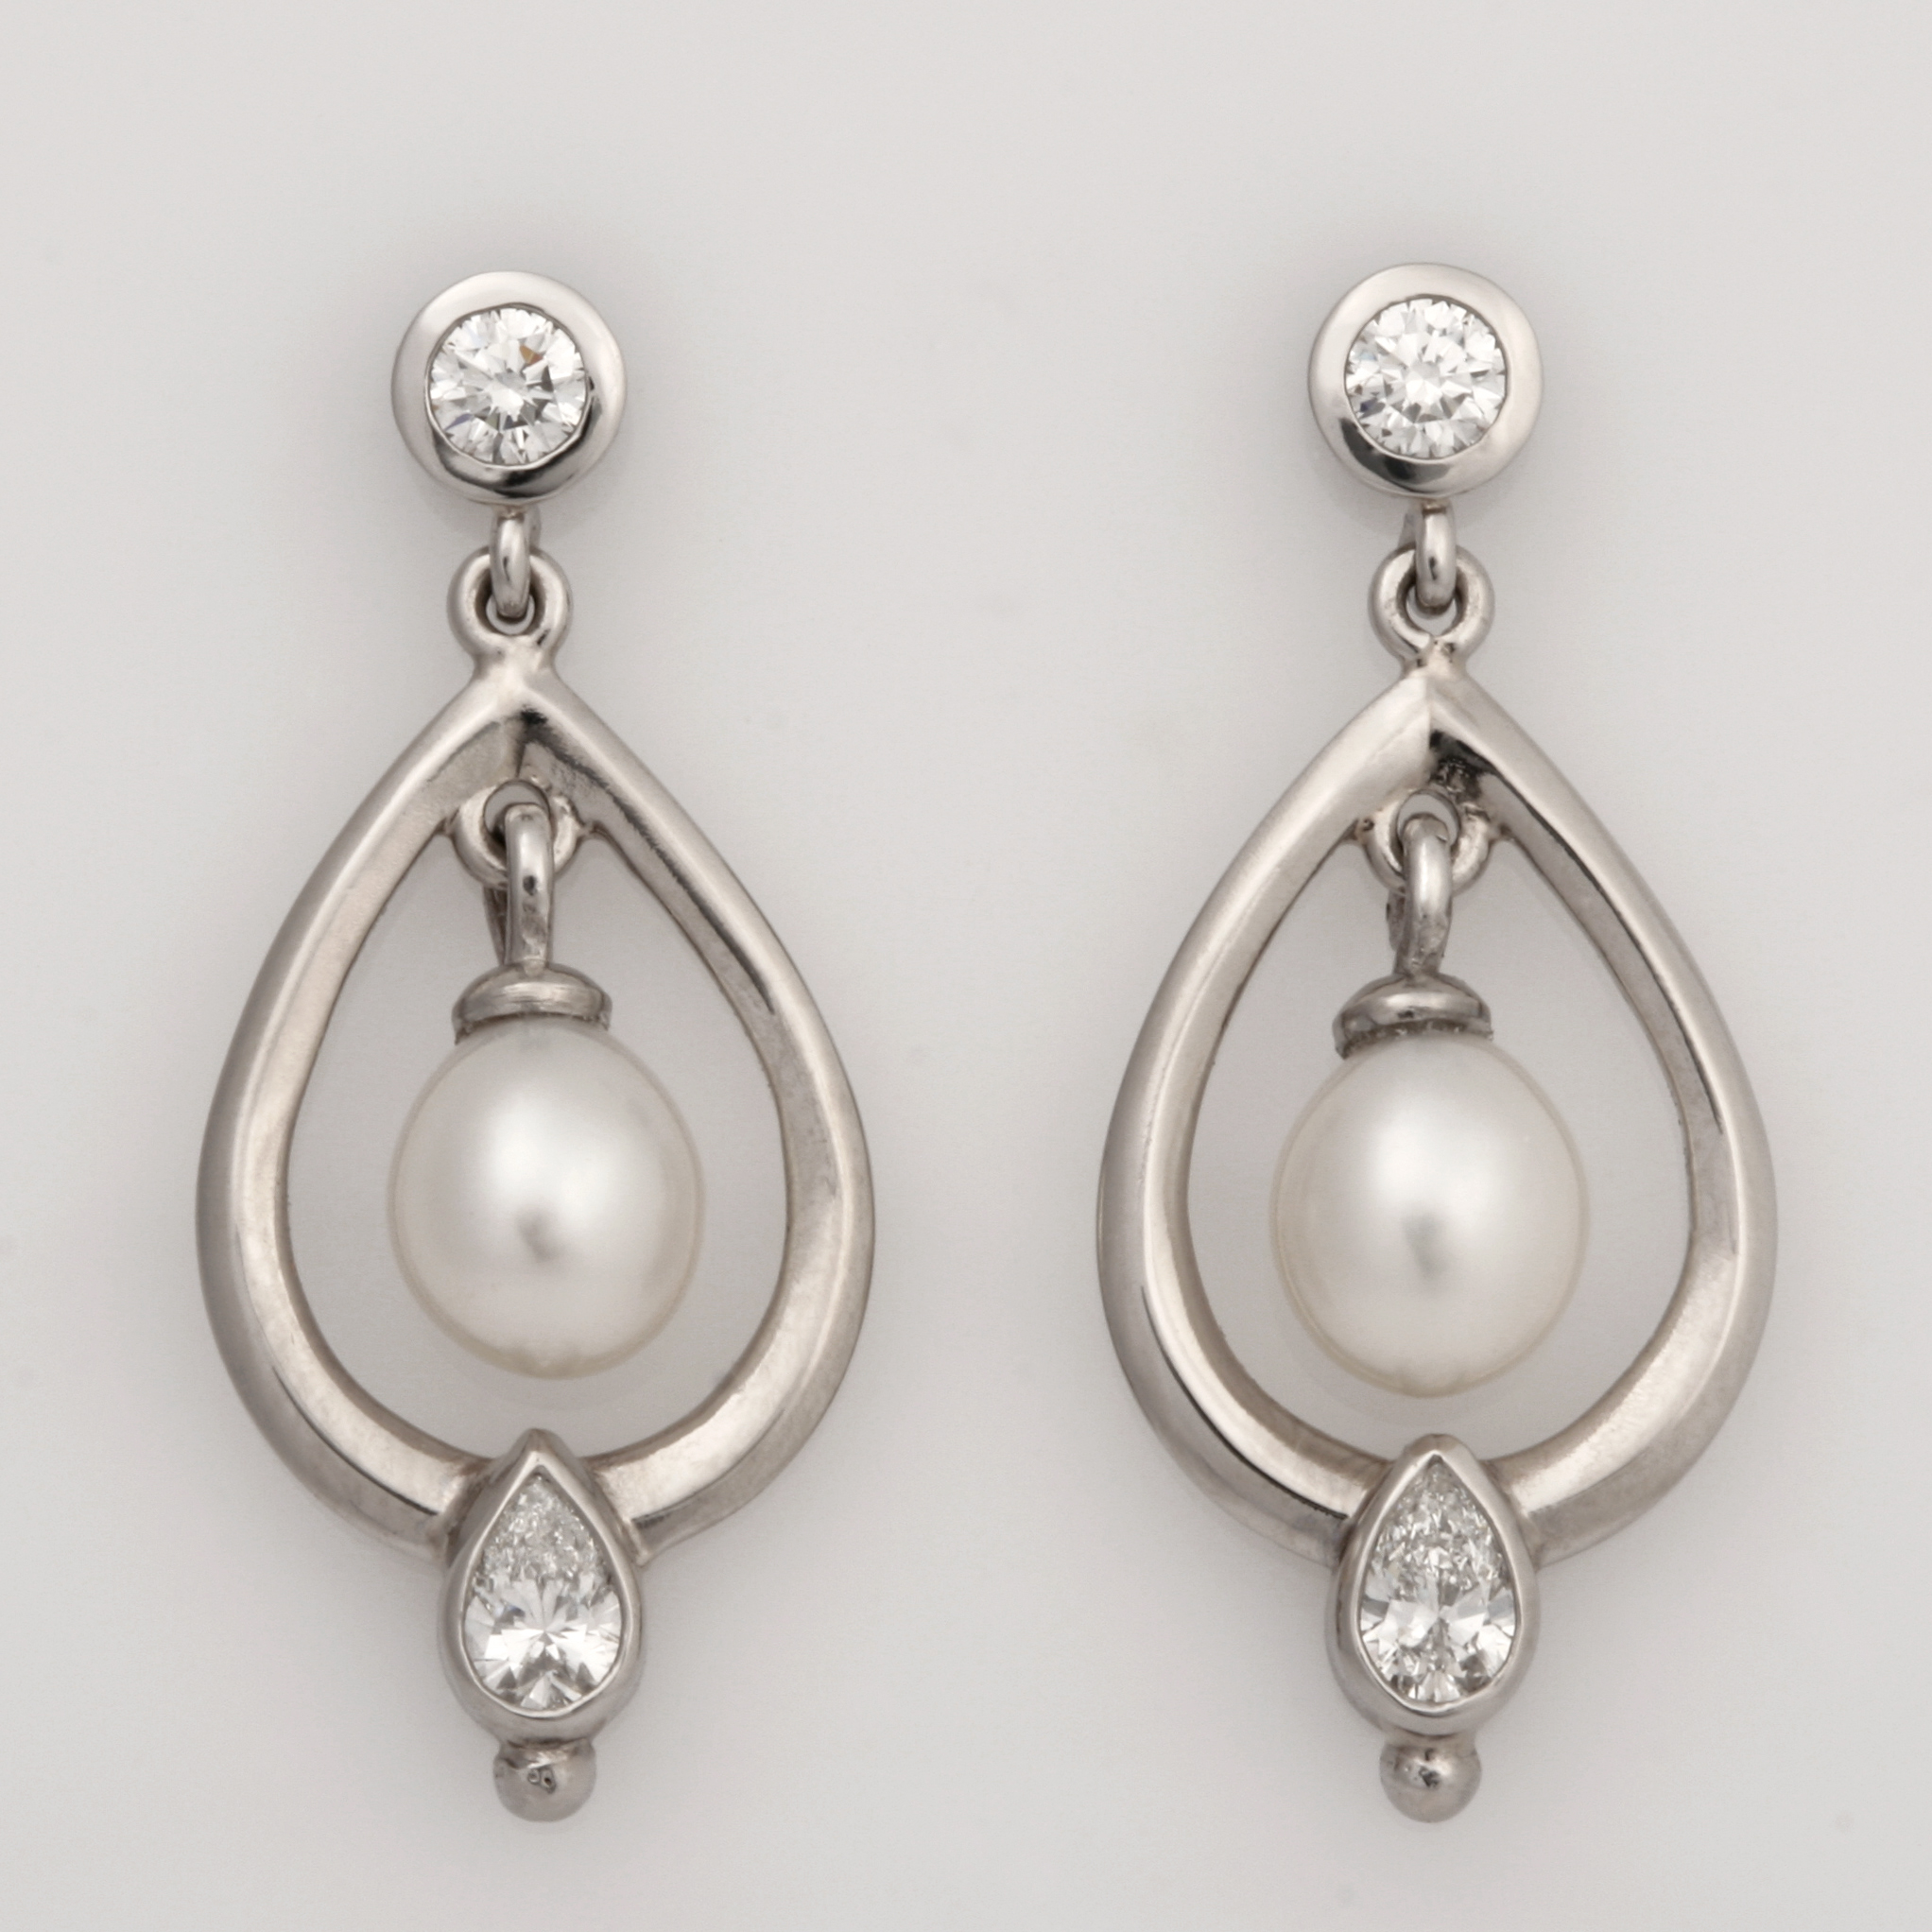 Handmade ladies palladium and 18ct white gold pearl and diamond drop earrings.